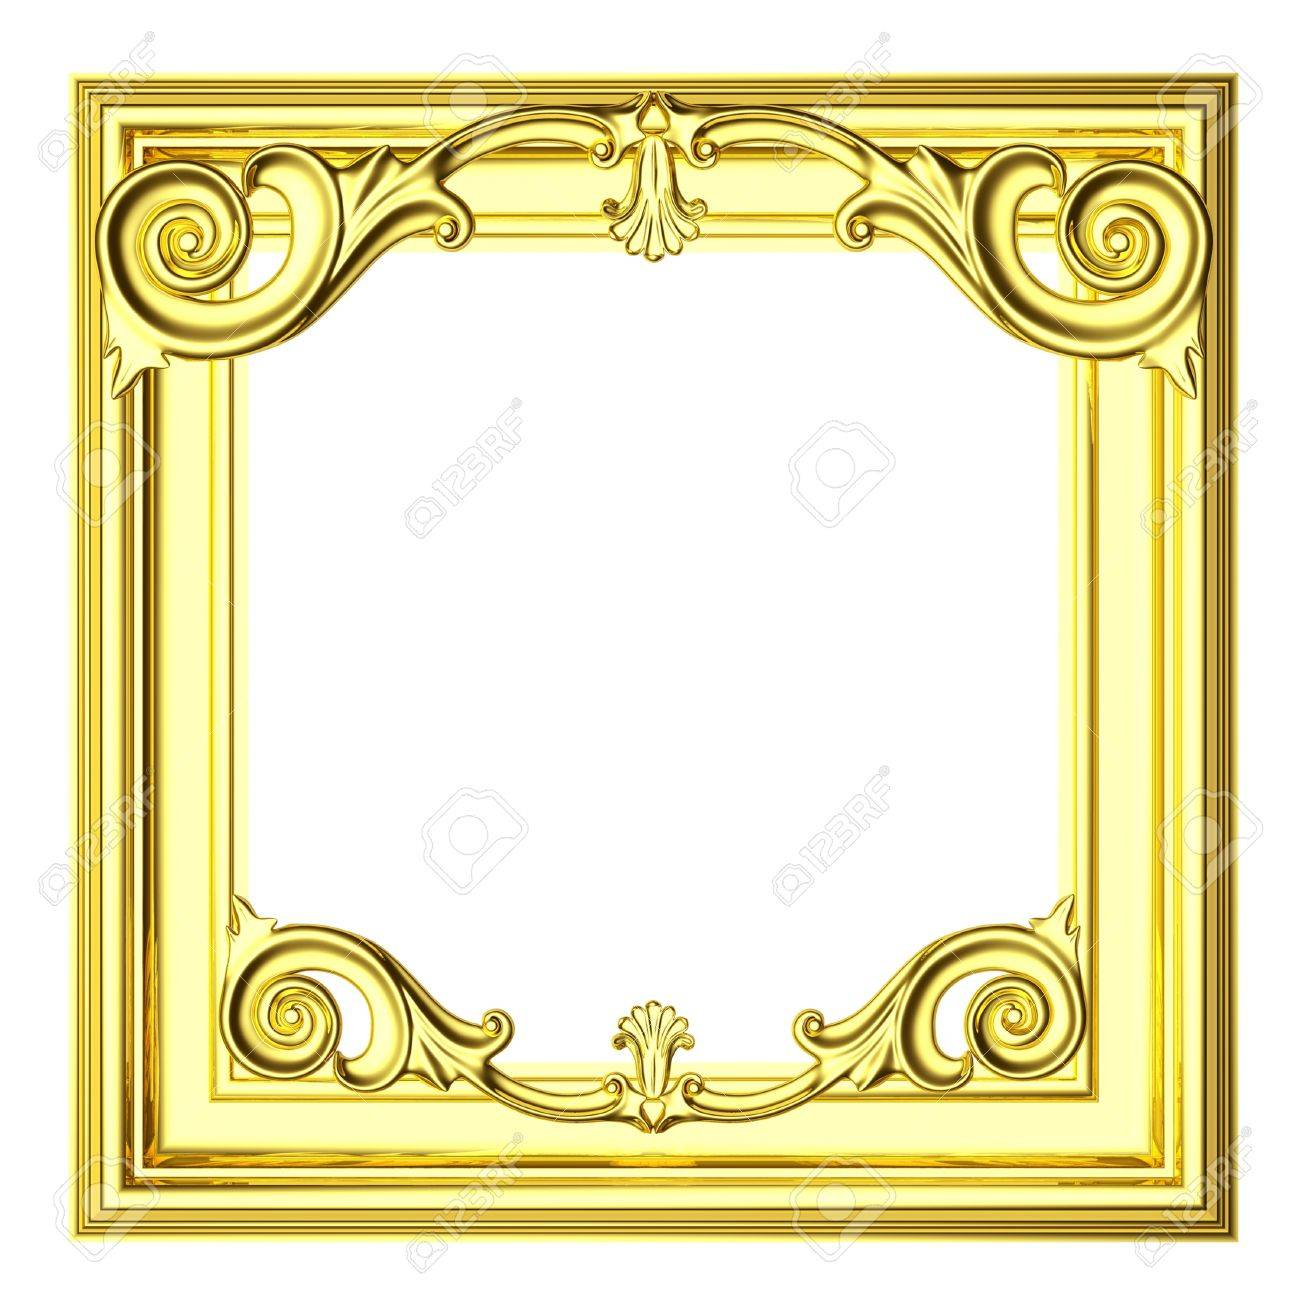 3d Gold Frame The Sculptural Form On A White Background Stock 1300x1300